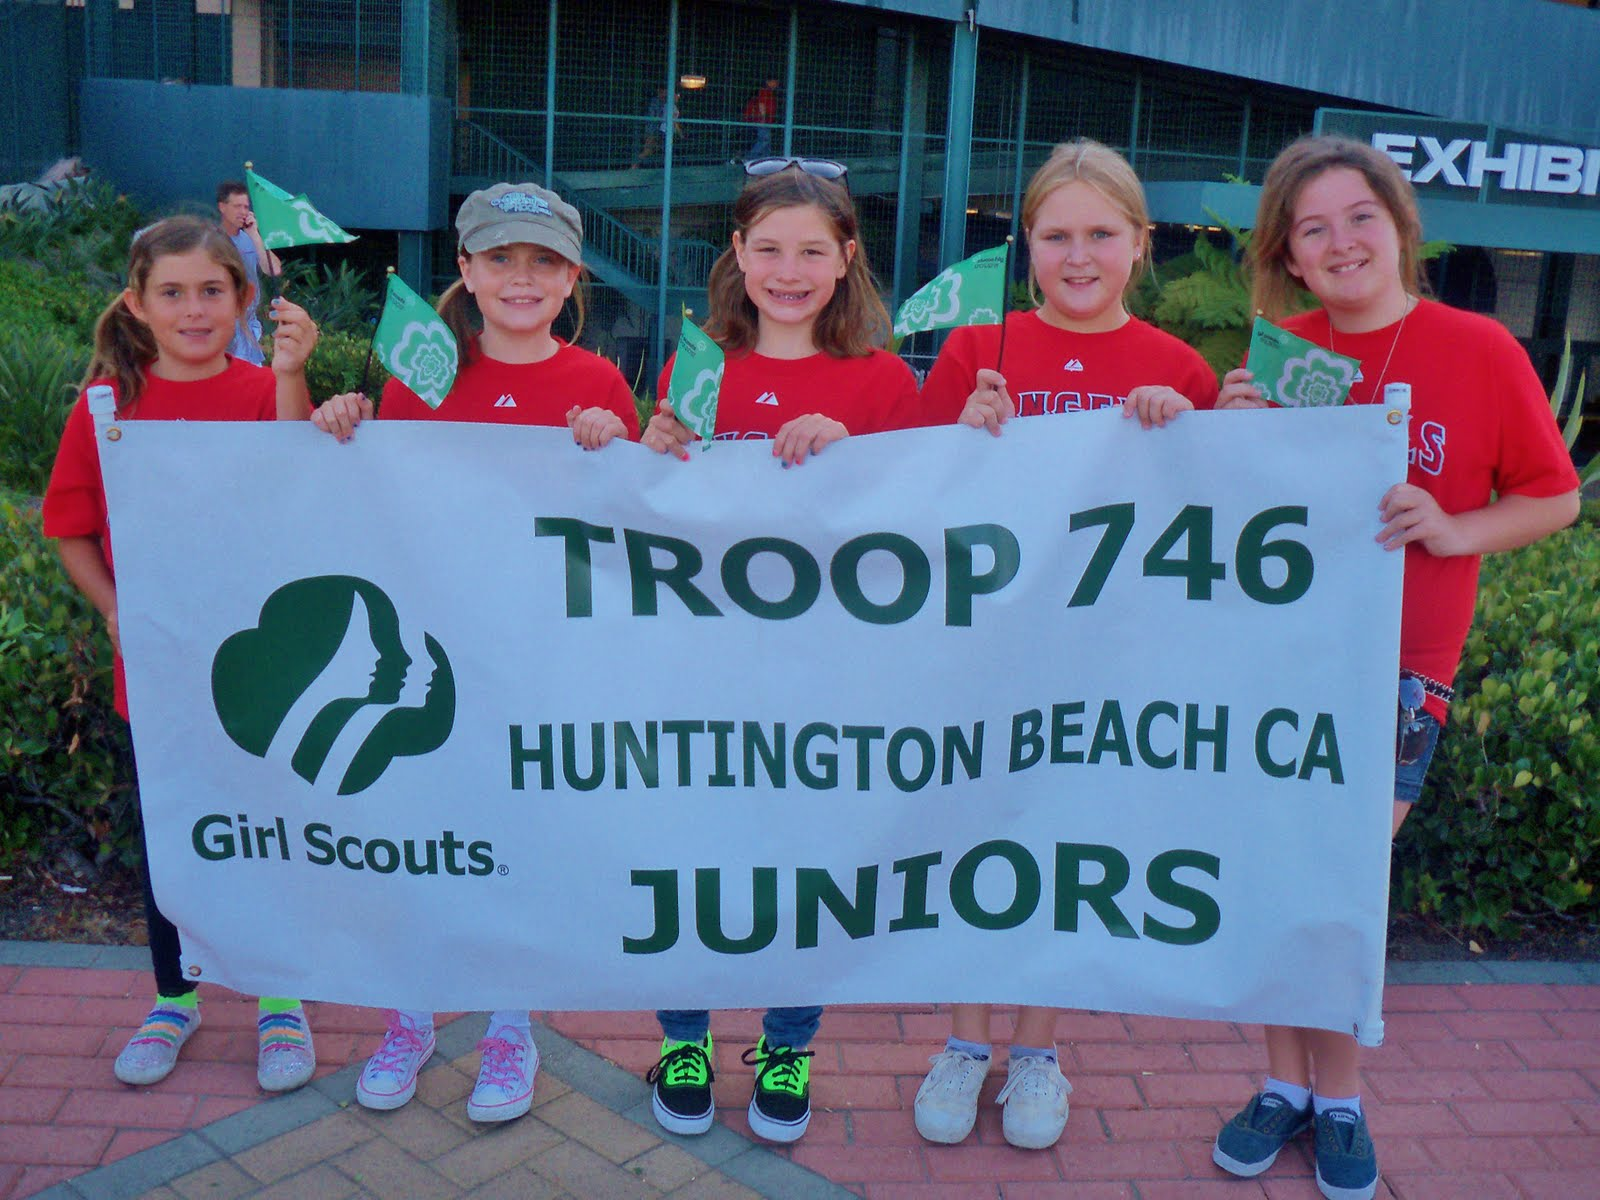 HUNTINGTON BEACH GIRL SCOUT TROOP 746: 2nd ANNUAL BANNER